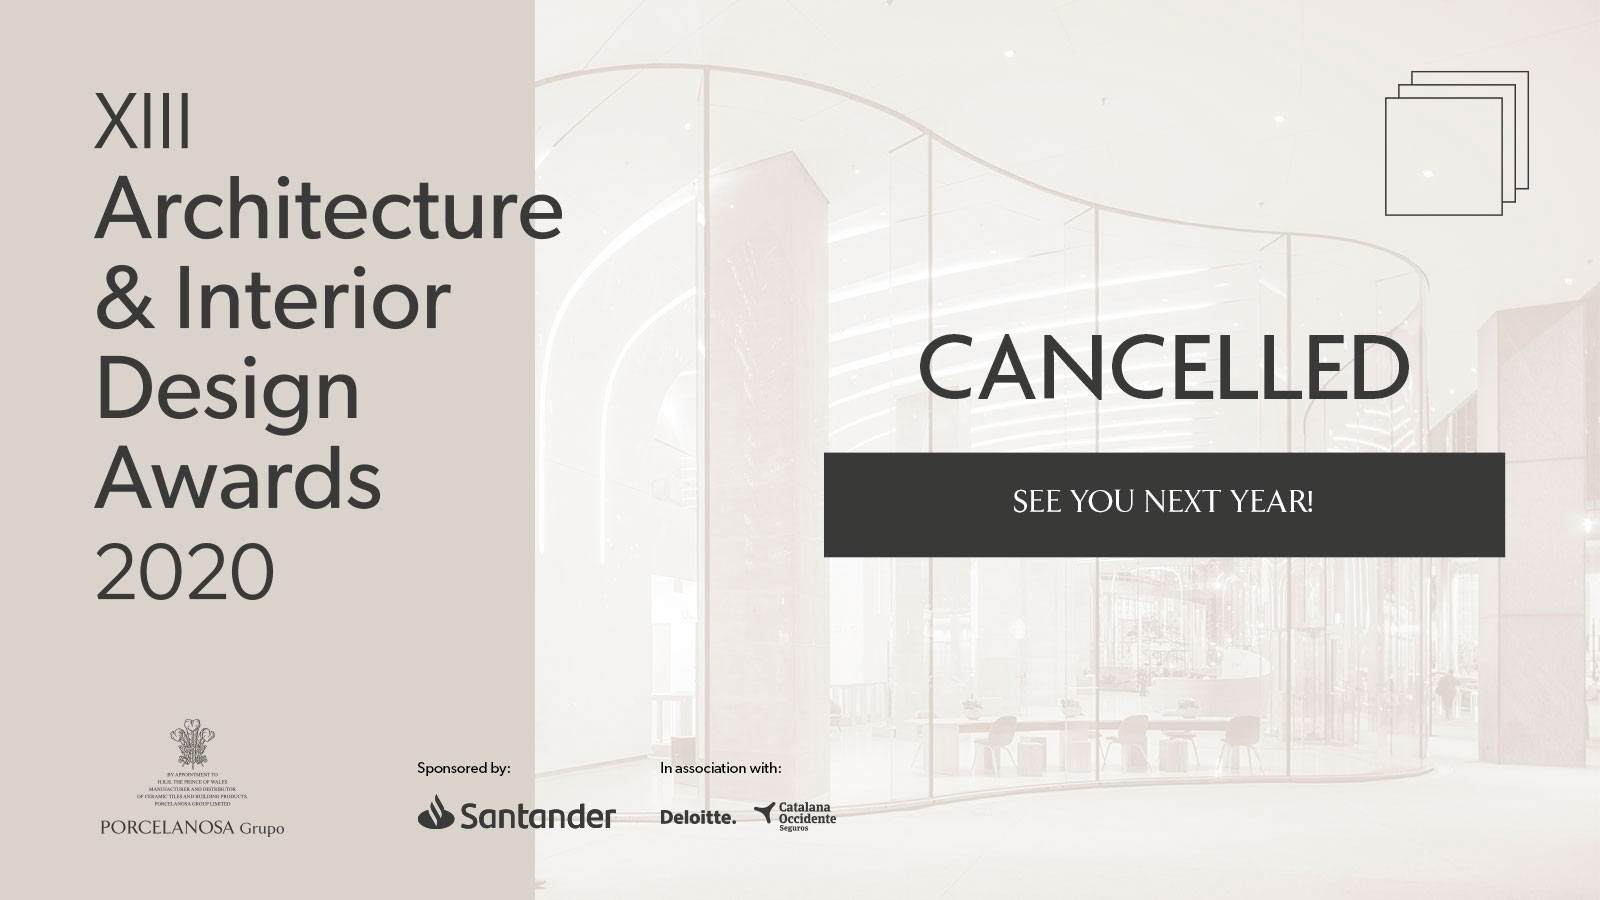 PORCELANOSA THIRTEENTH ARCHITECTURE AND INTERIOR DESIGN AWARDS CANCELLED